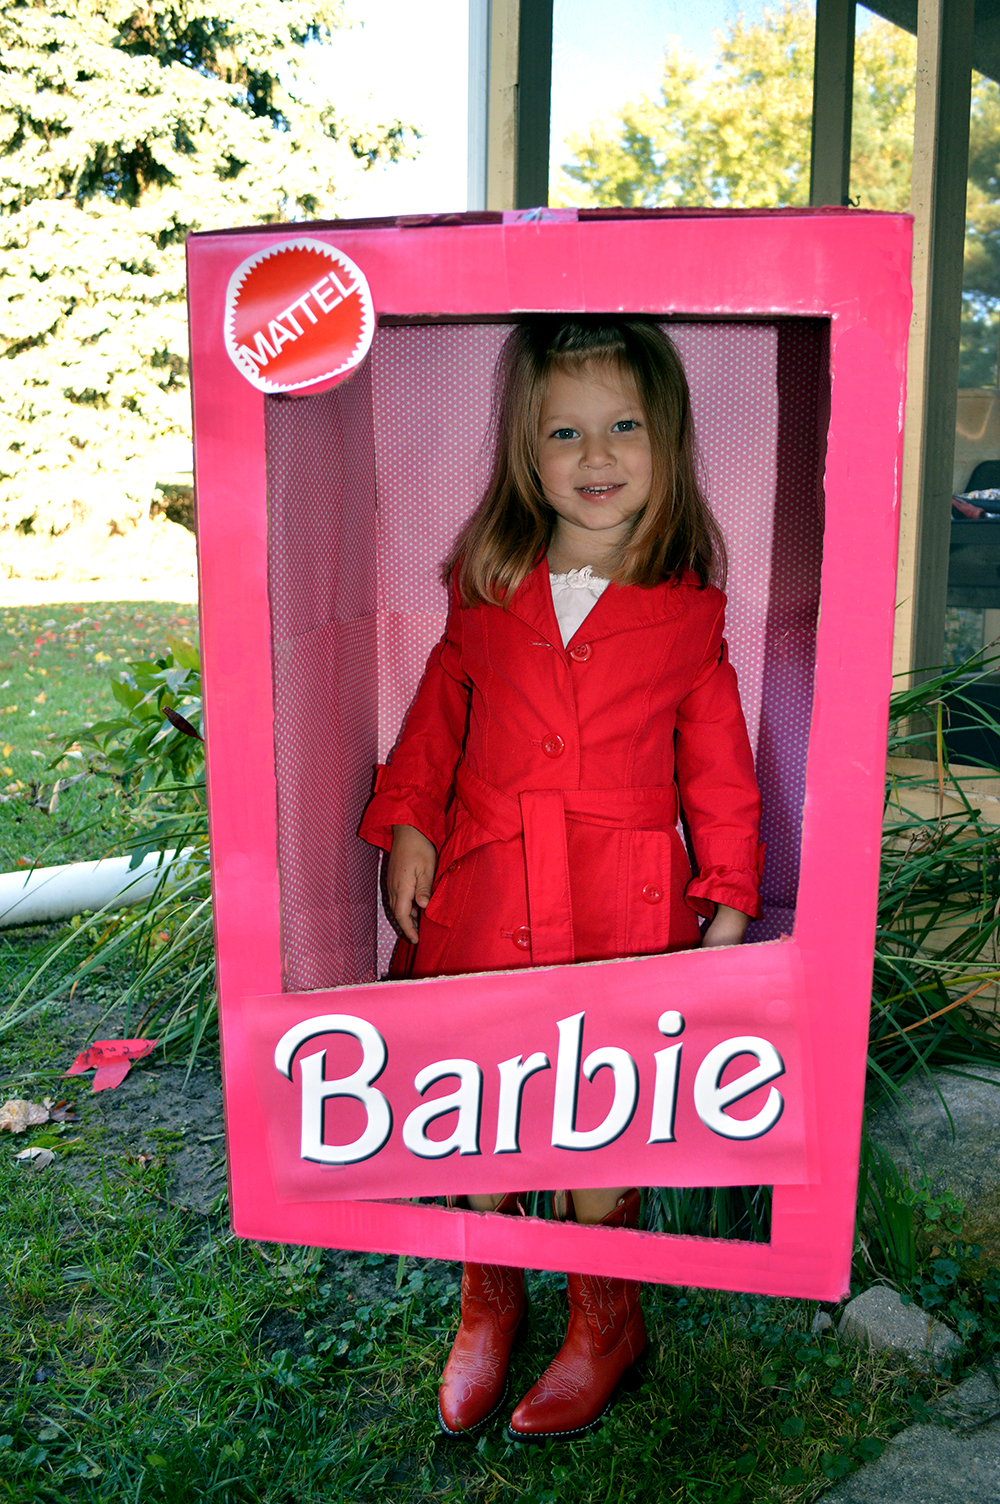 BarbieBoxCostume  sc 1 st  two men and a truck & 5 simple DIY Halloween costumes u2013 TWO MEN AND A TRUCK®